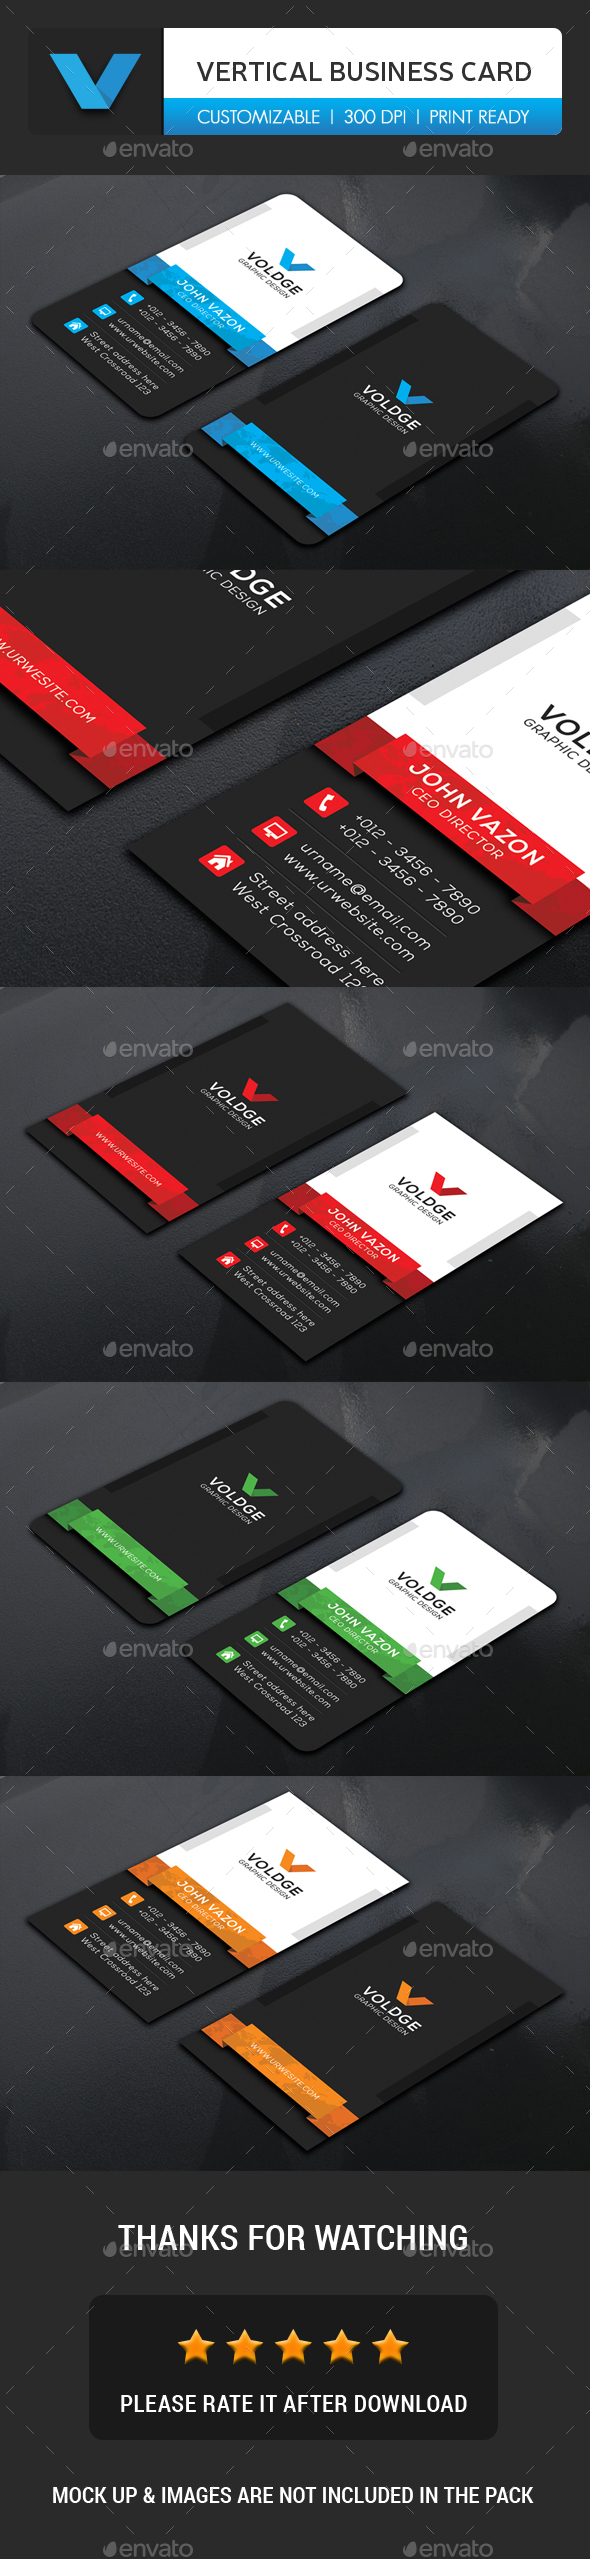 Vertical Business Card - Business Cards Print Templates